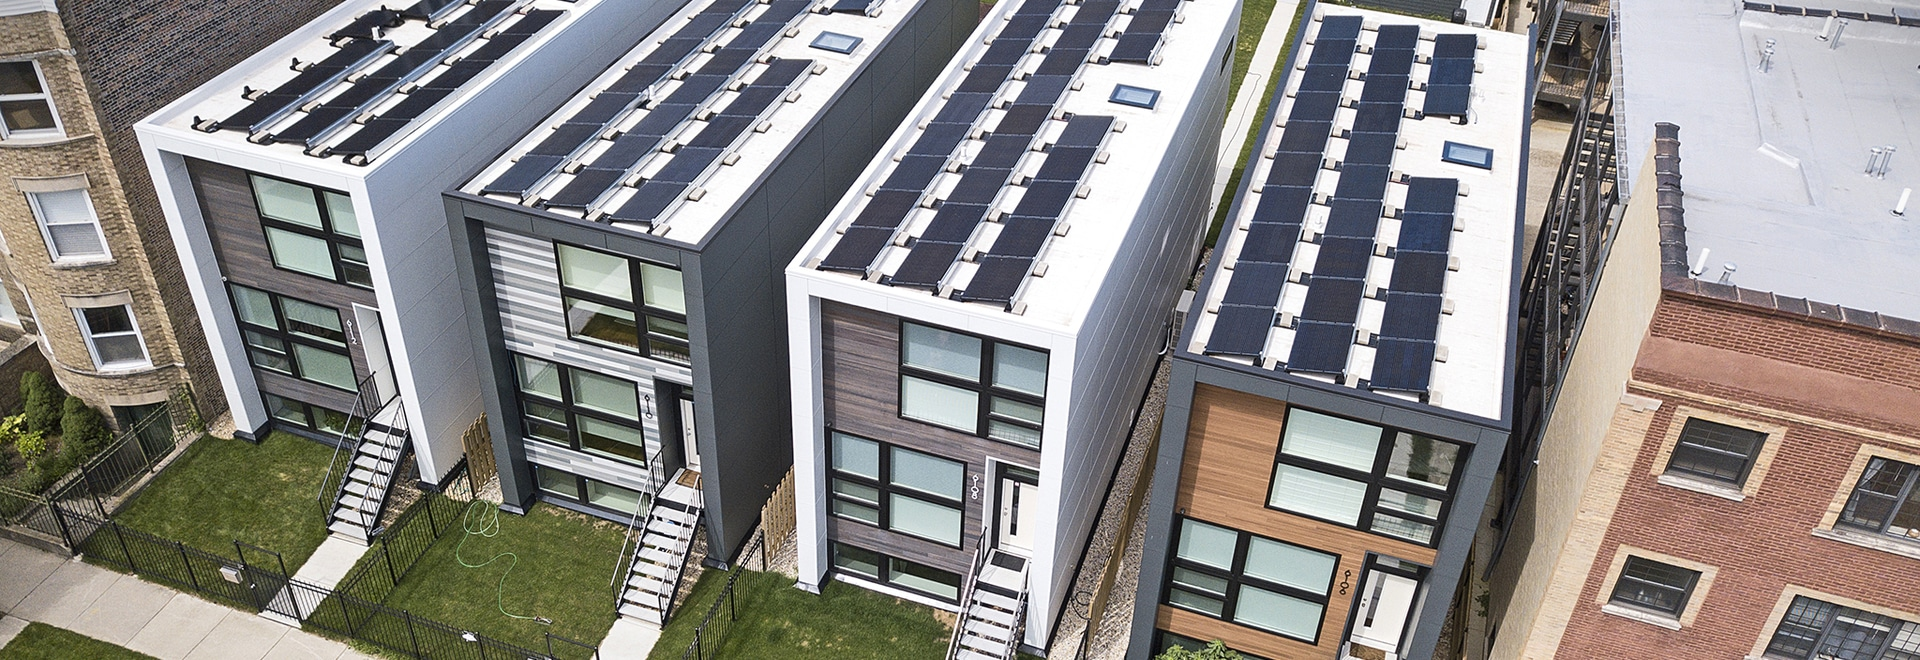 Flat roofs benefit residents